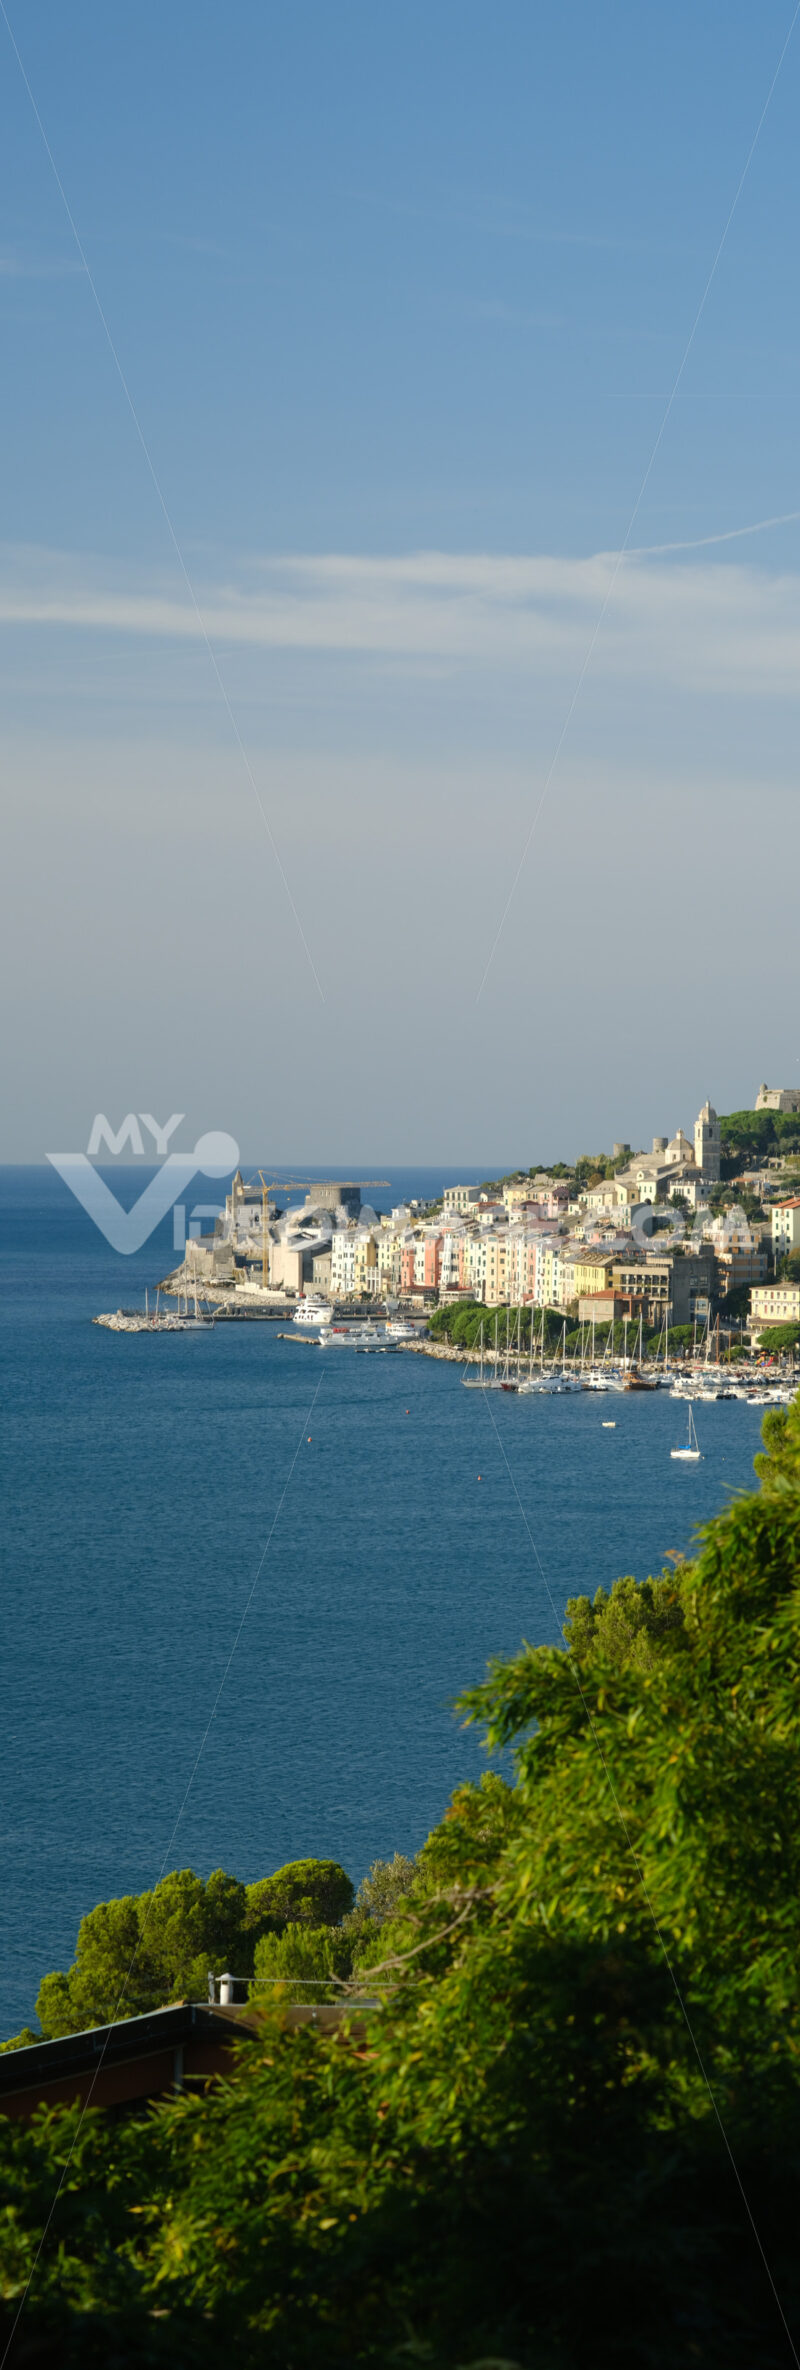 Panorama from the top of Portovenere, near the Cinque Terre, at sunrise light. The bay with the marina, the fort, the church of San Pietro. - MyVideoimage.com